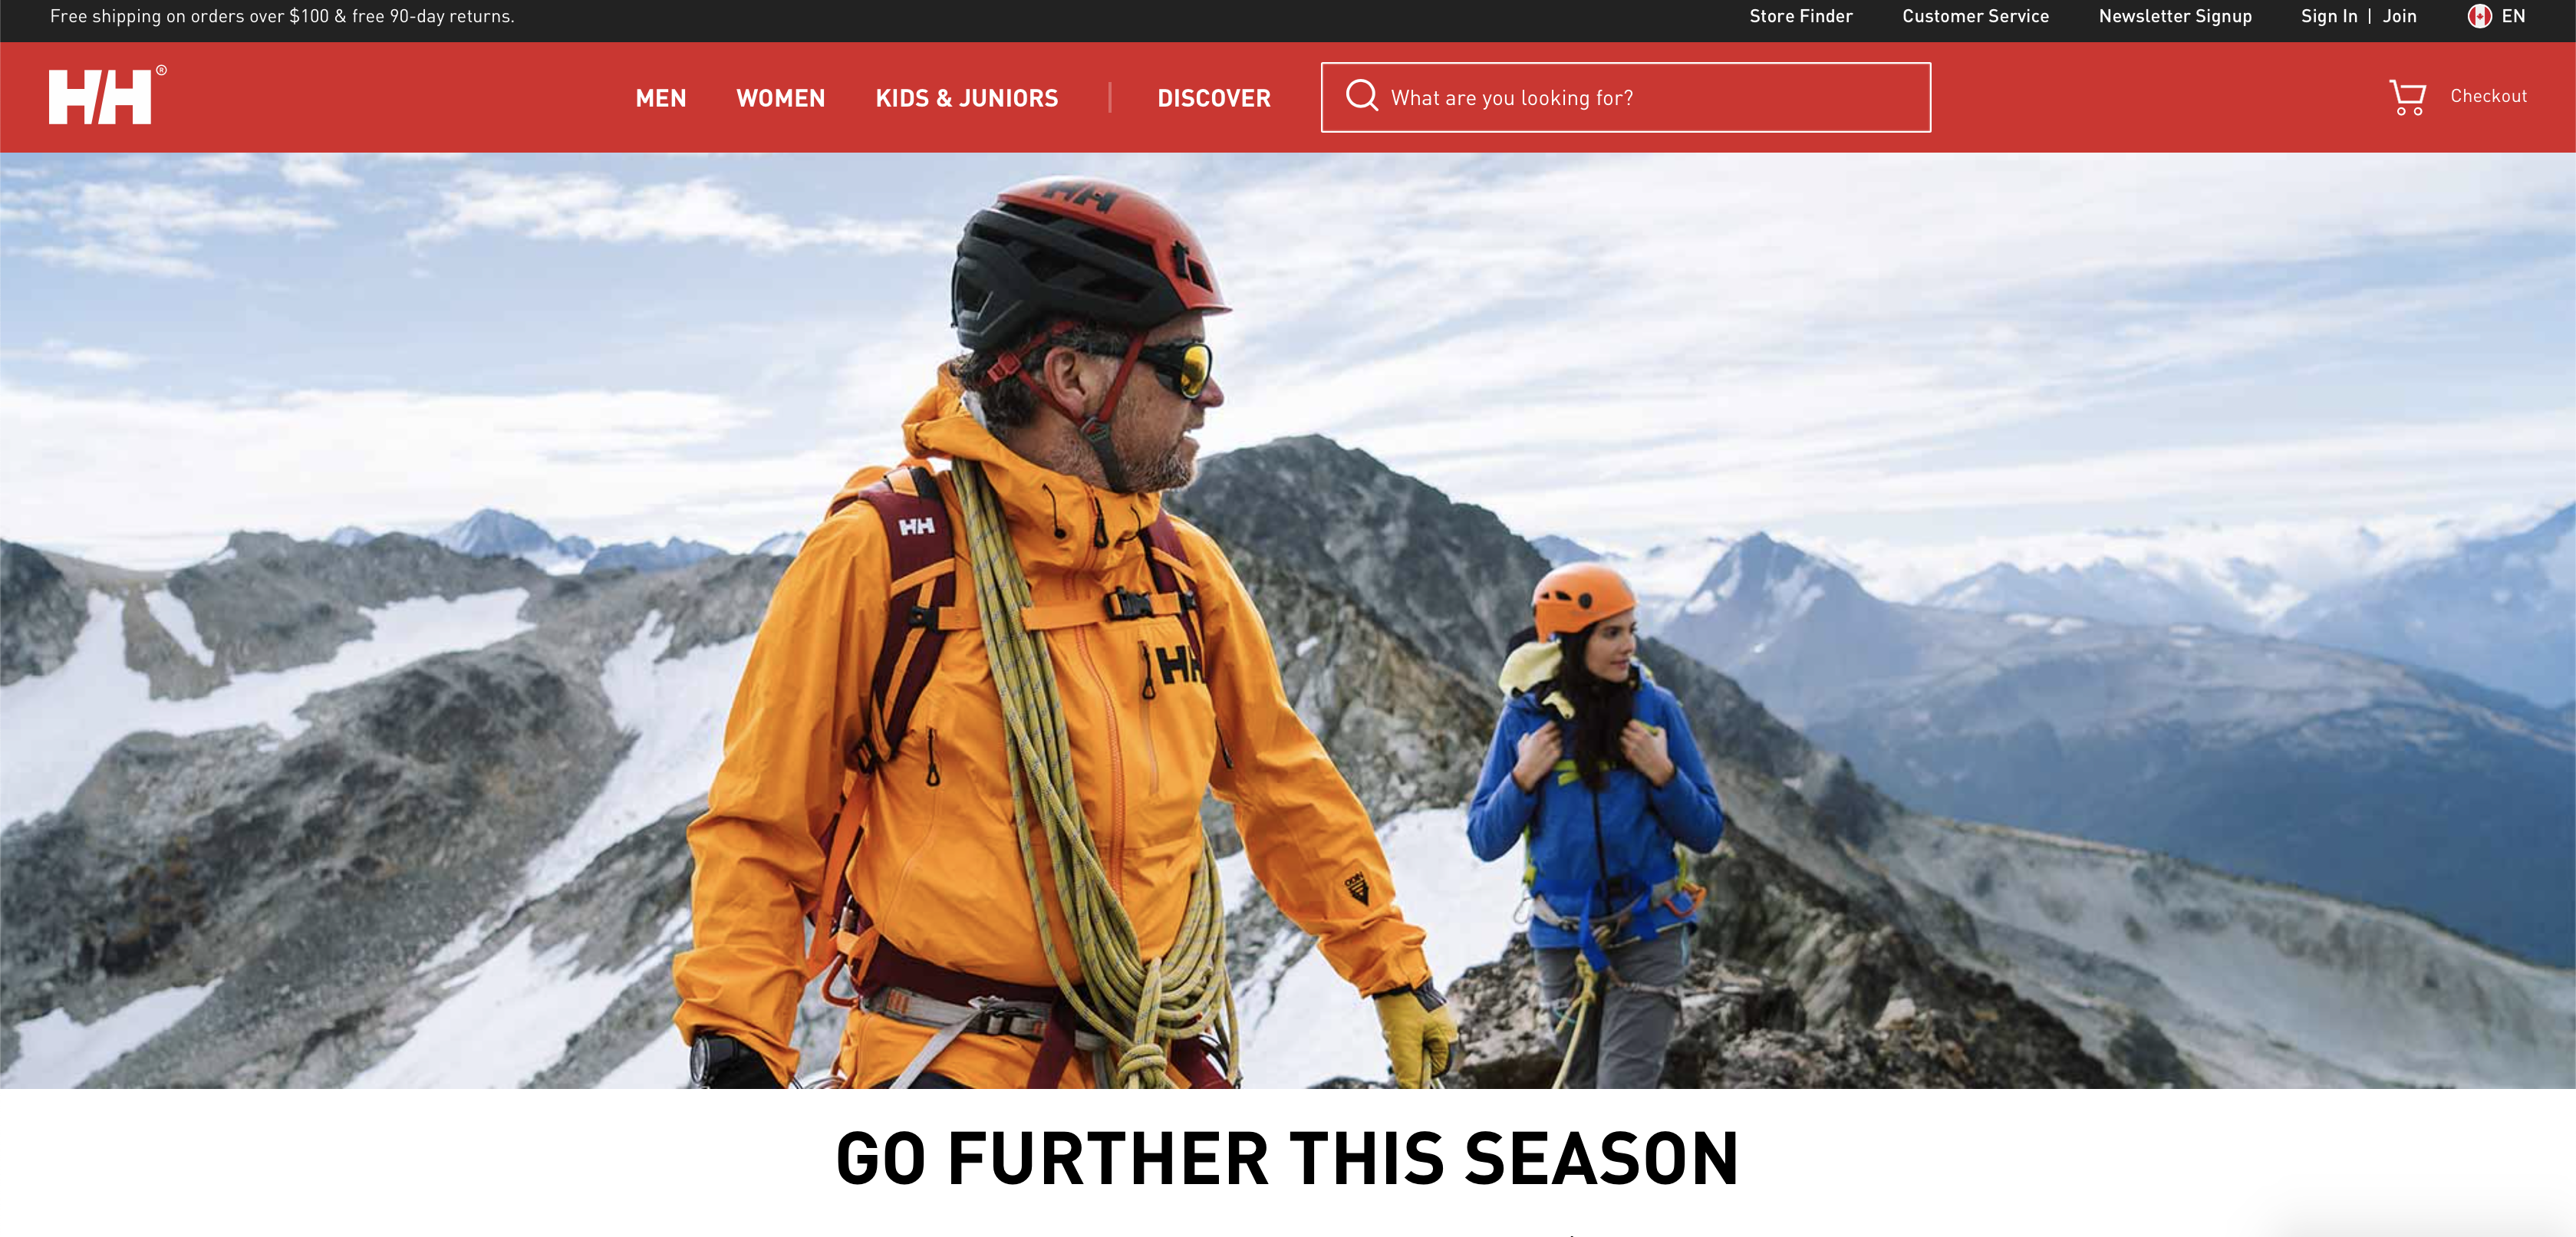 Michael Overbeck's work for apparel company Helly Hansen